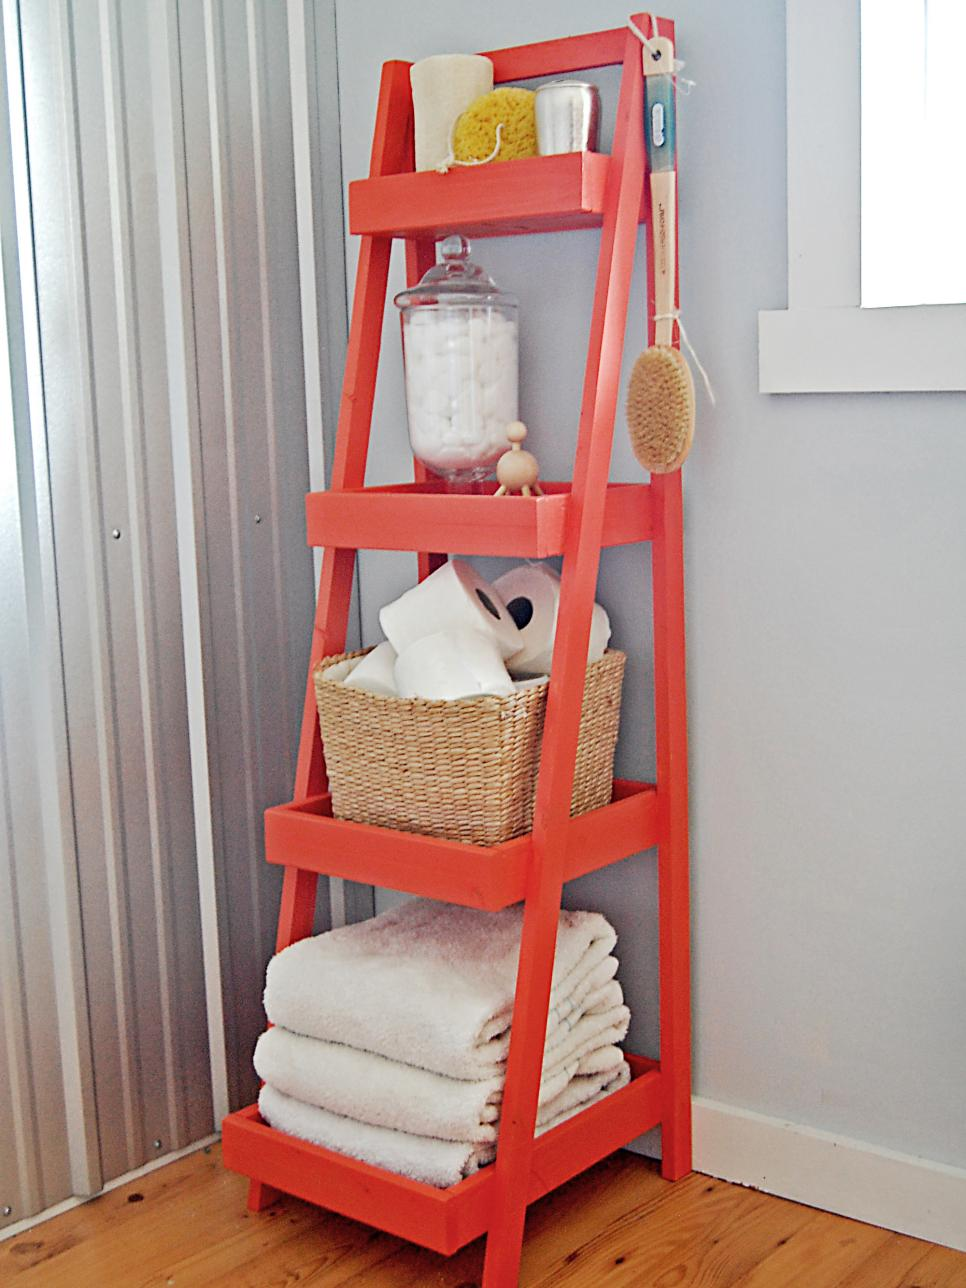 Bathroom Storage Ideas 12 clever bathroom storage ideas | hgtv